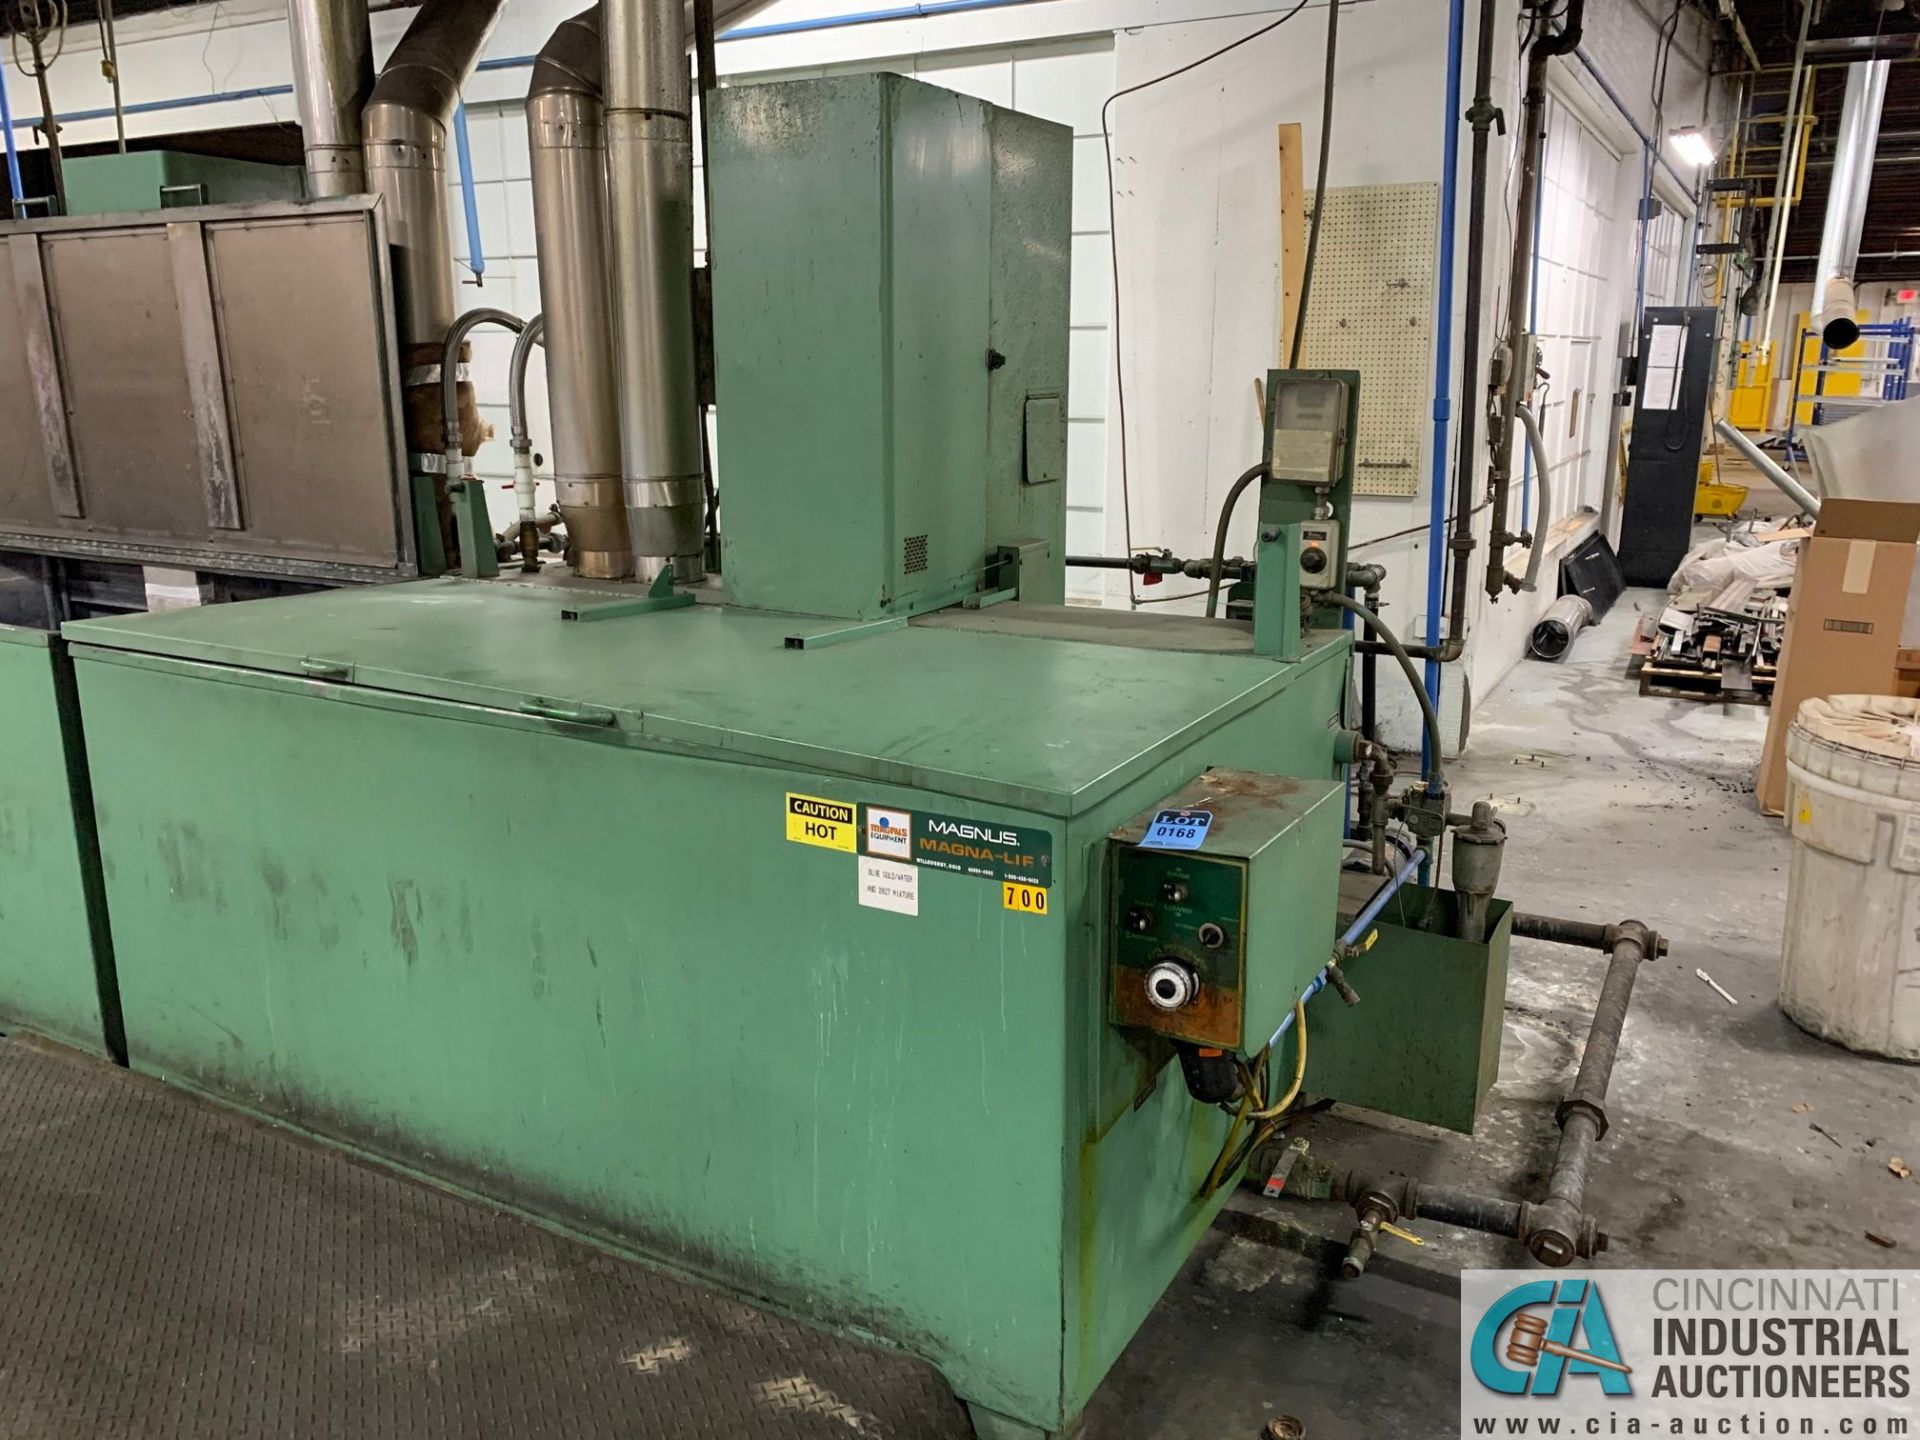 MAGNUS MAGNA-LIF MODEL MALH SIZE 5.5 DIP TYPE WASHER; S/N 50231, 600 GALLON TANK, 1,000 LB. CAPACITY